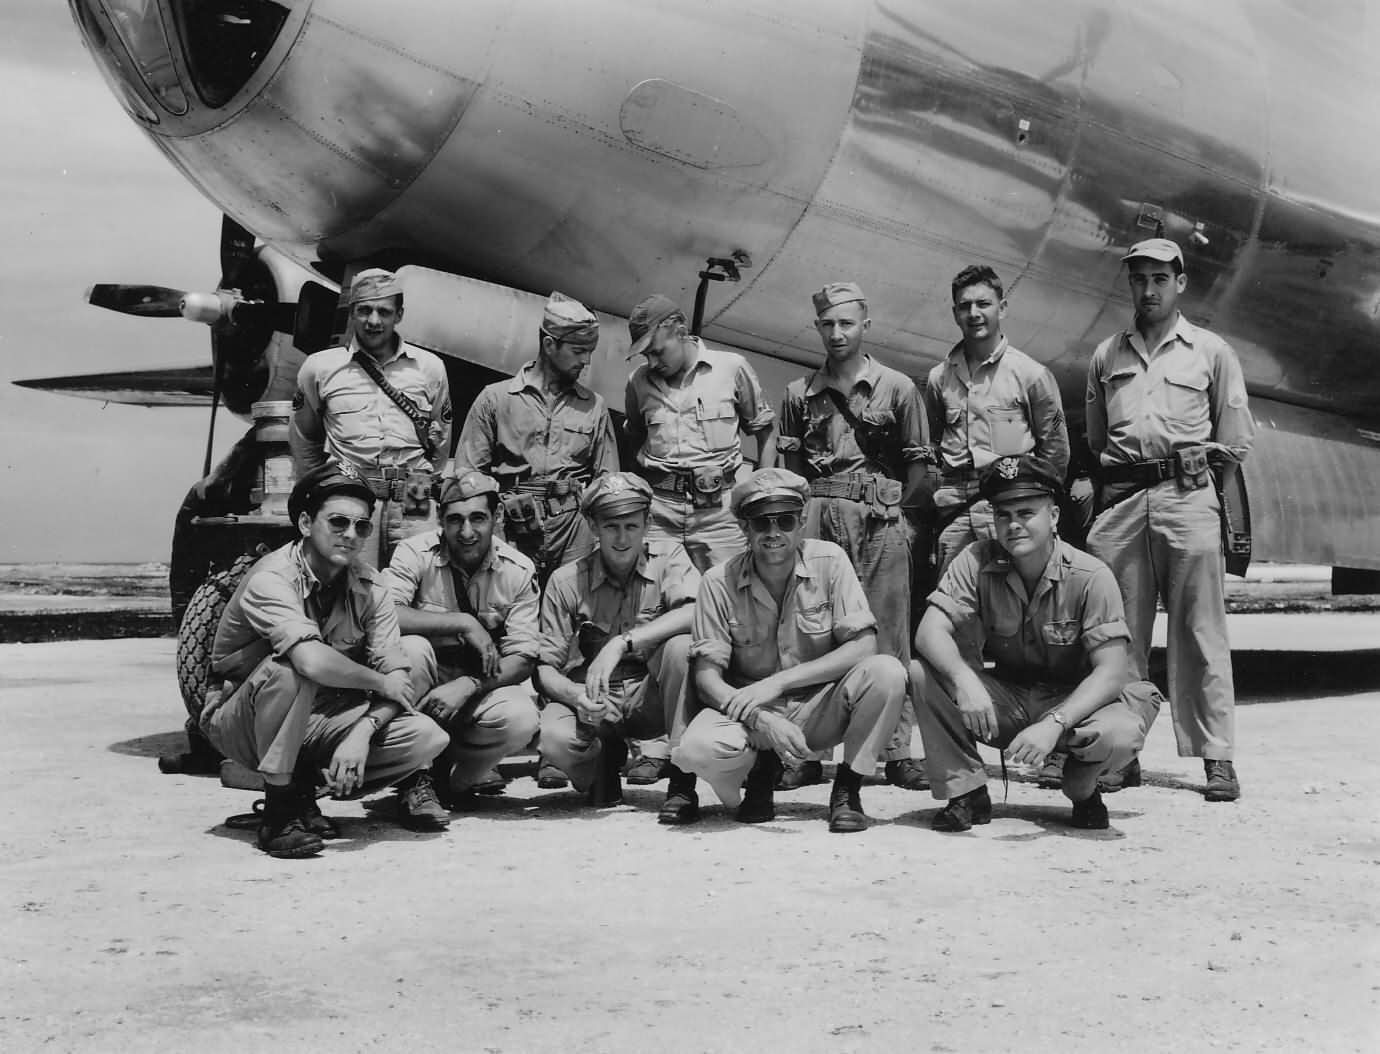 B-29 Superfortress bomber crew on TINIAN airfield Pacific